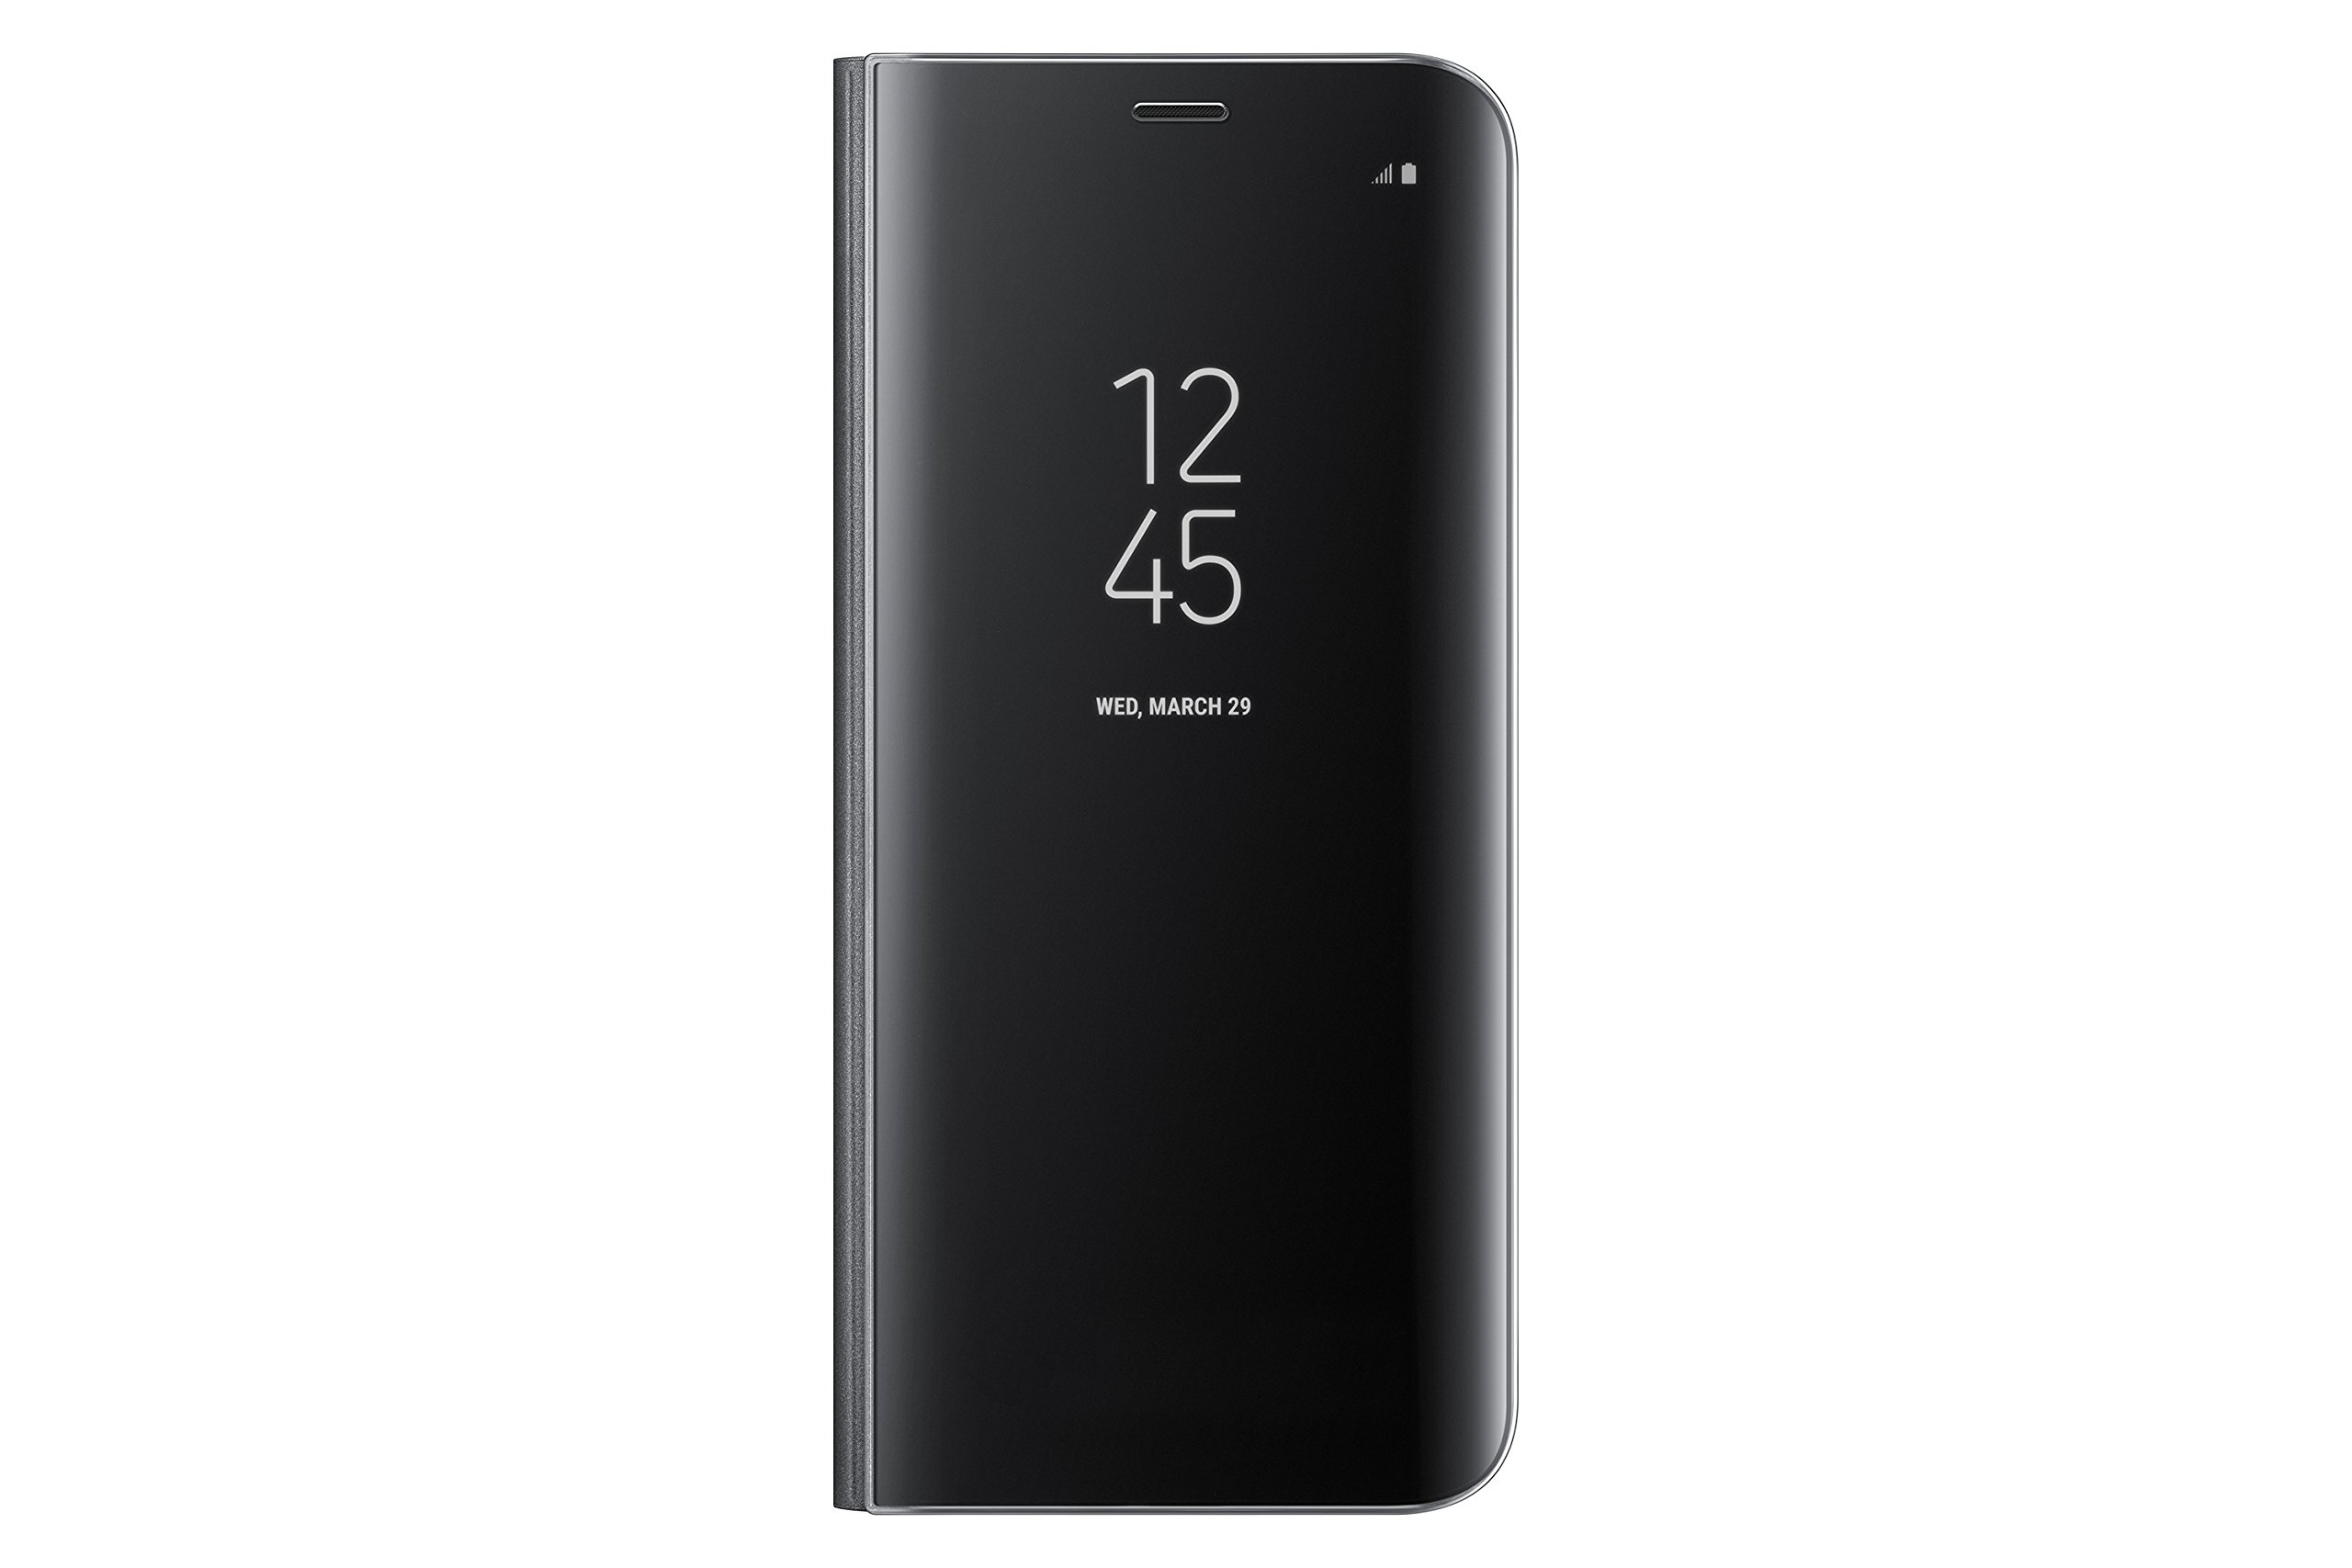 Samsung Galaxy S8 S-View Flip Cover with Kickstand, Black by Samsung